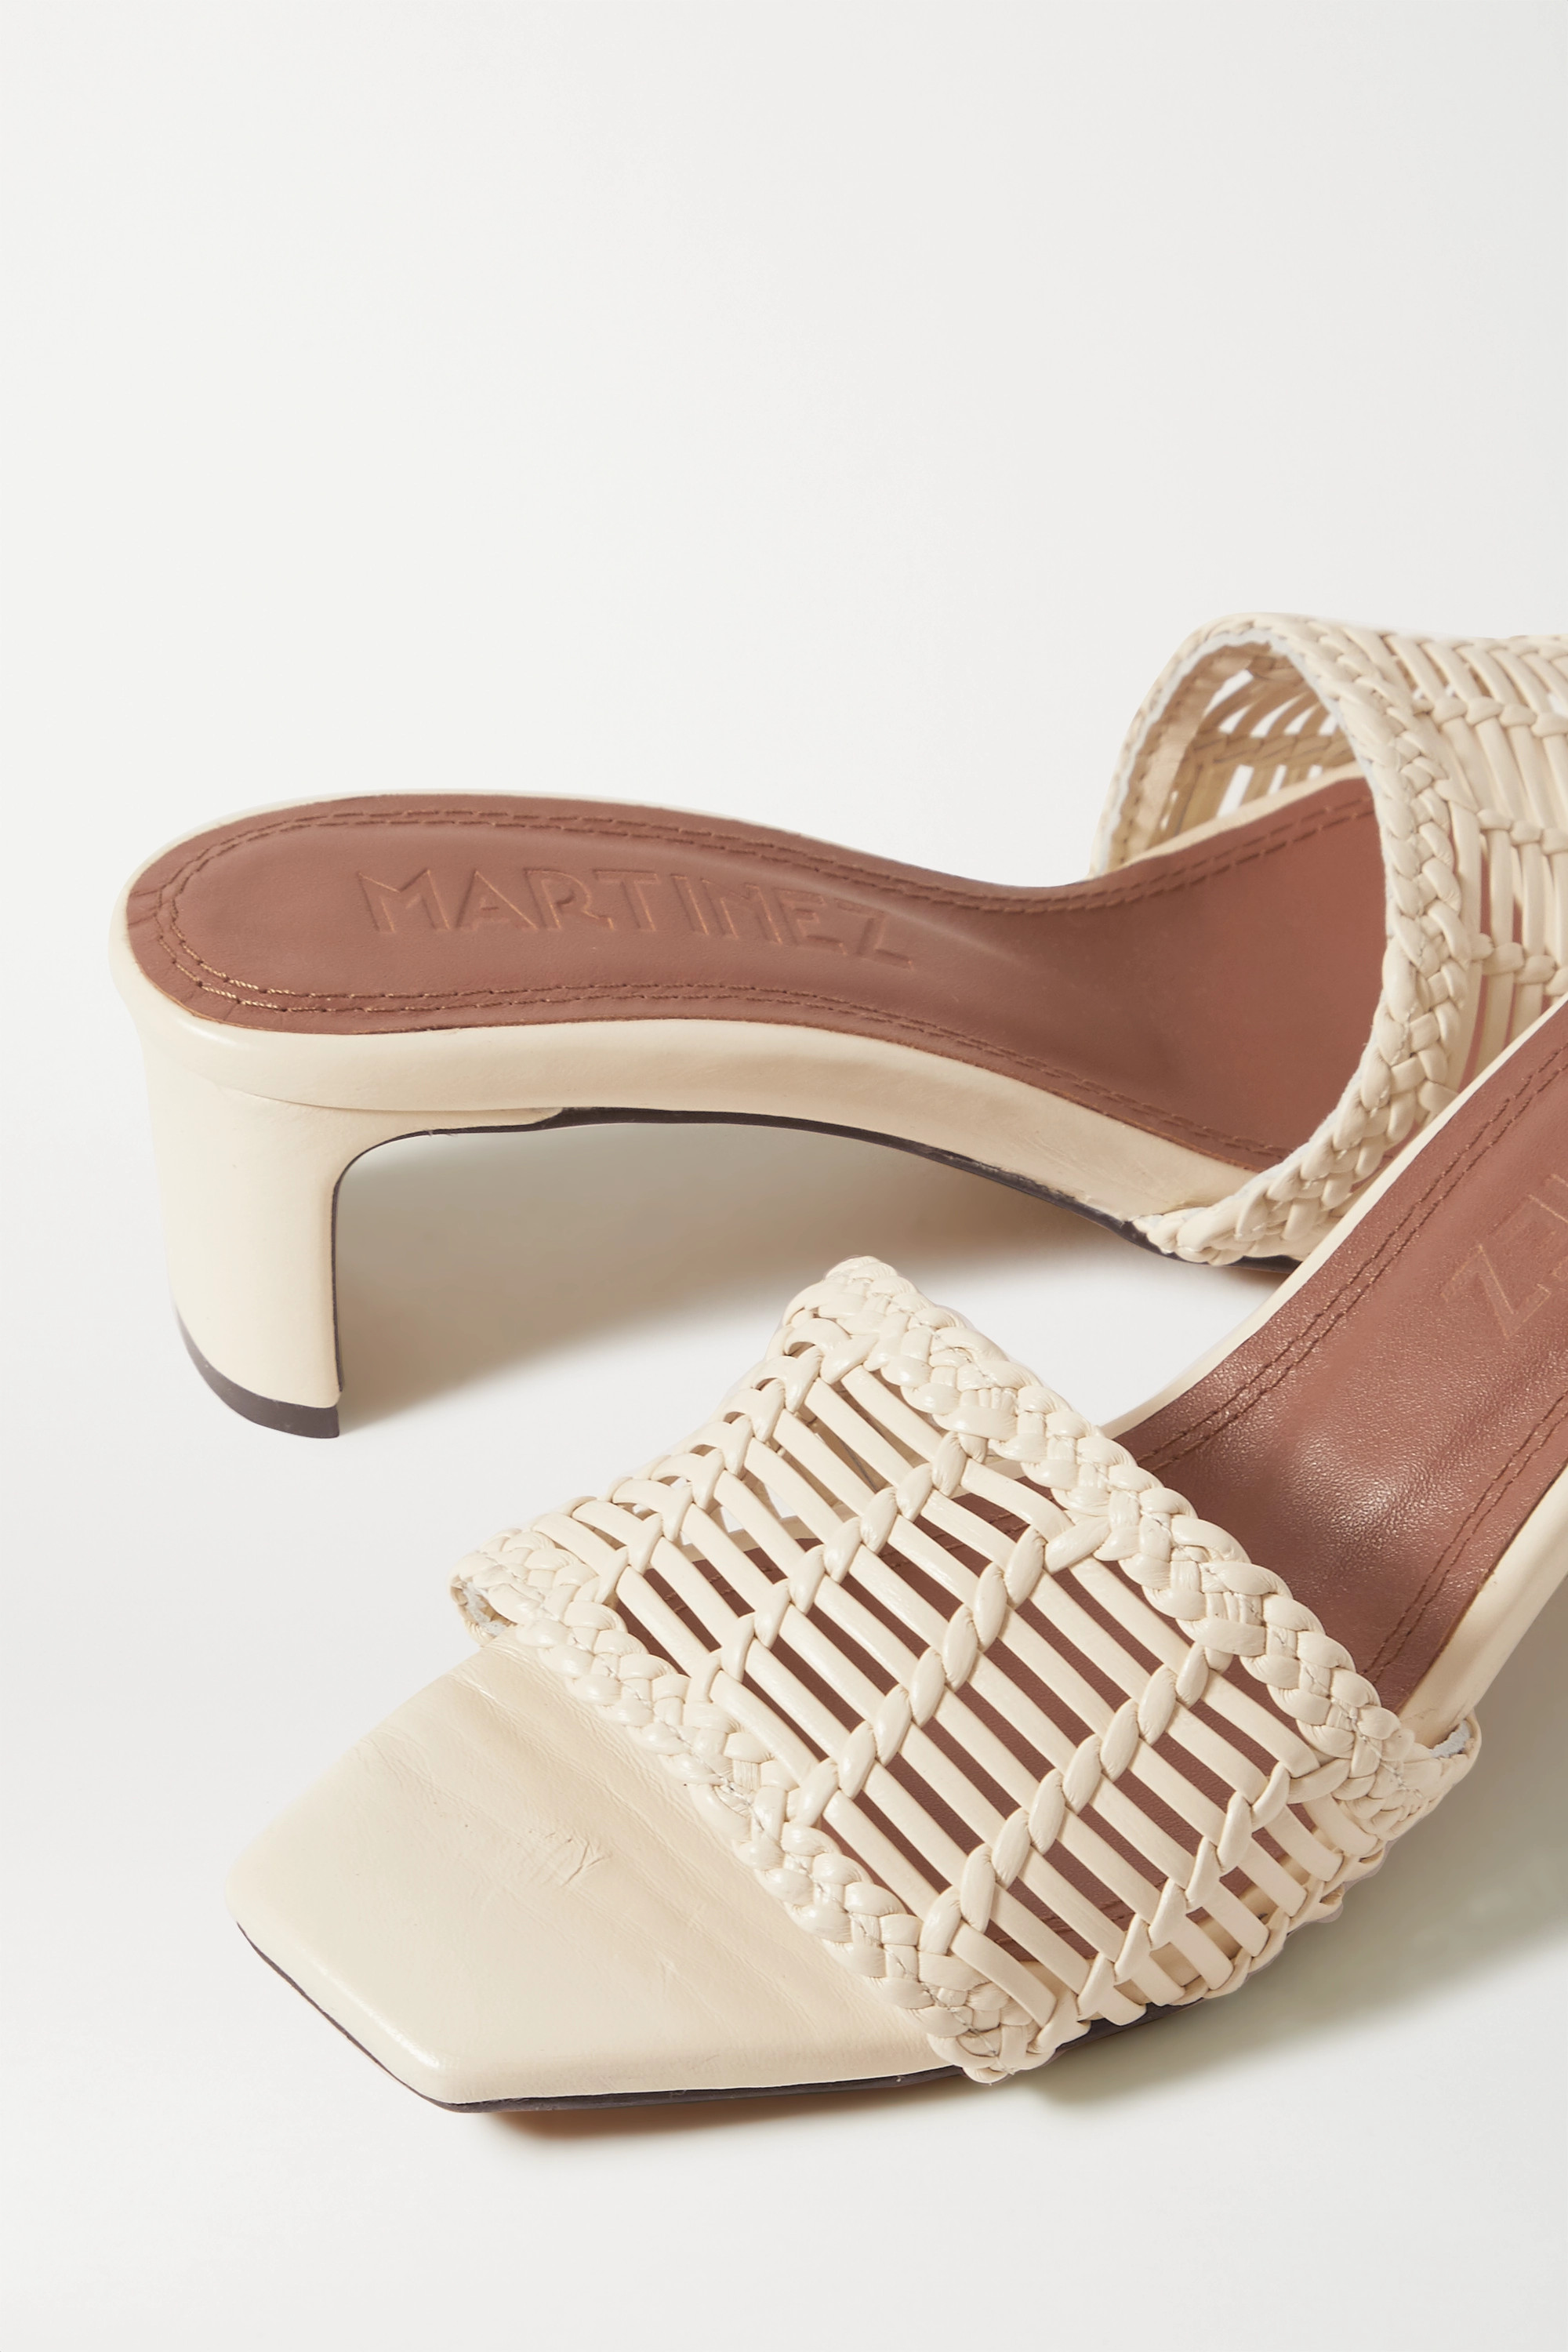 Souliers Martinez Olga woven leather mules